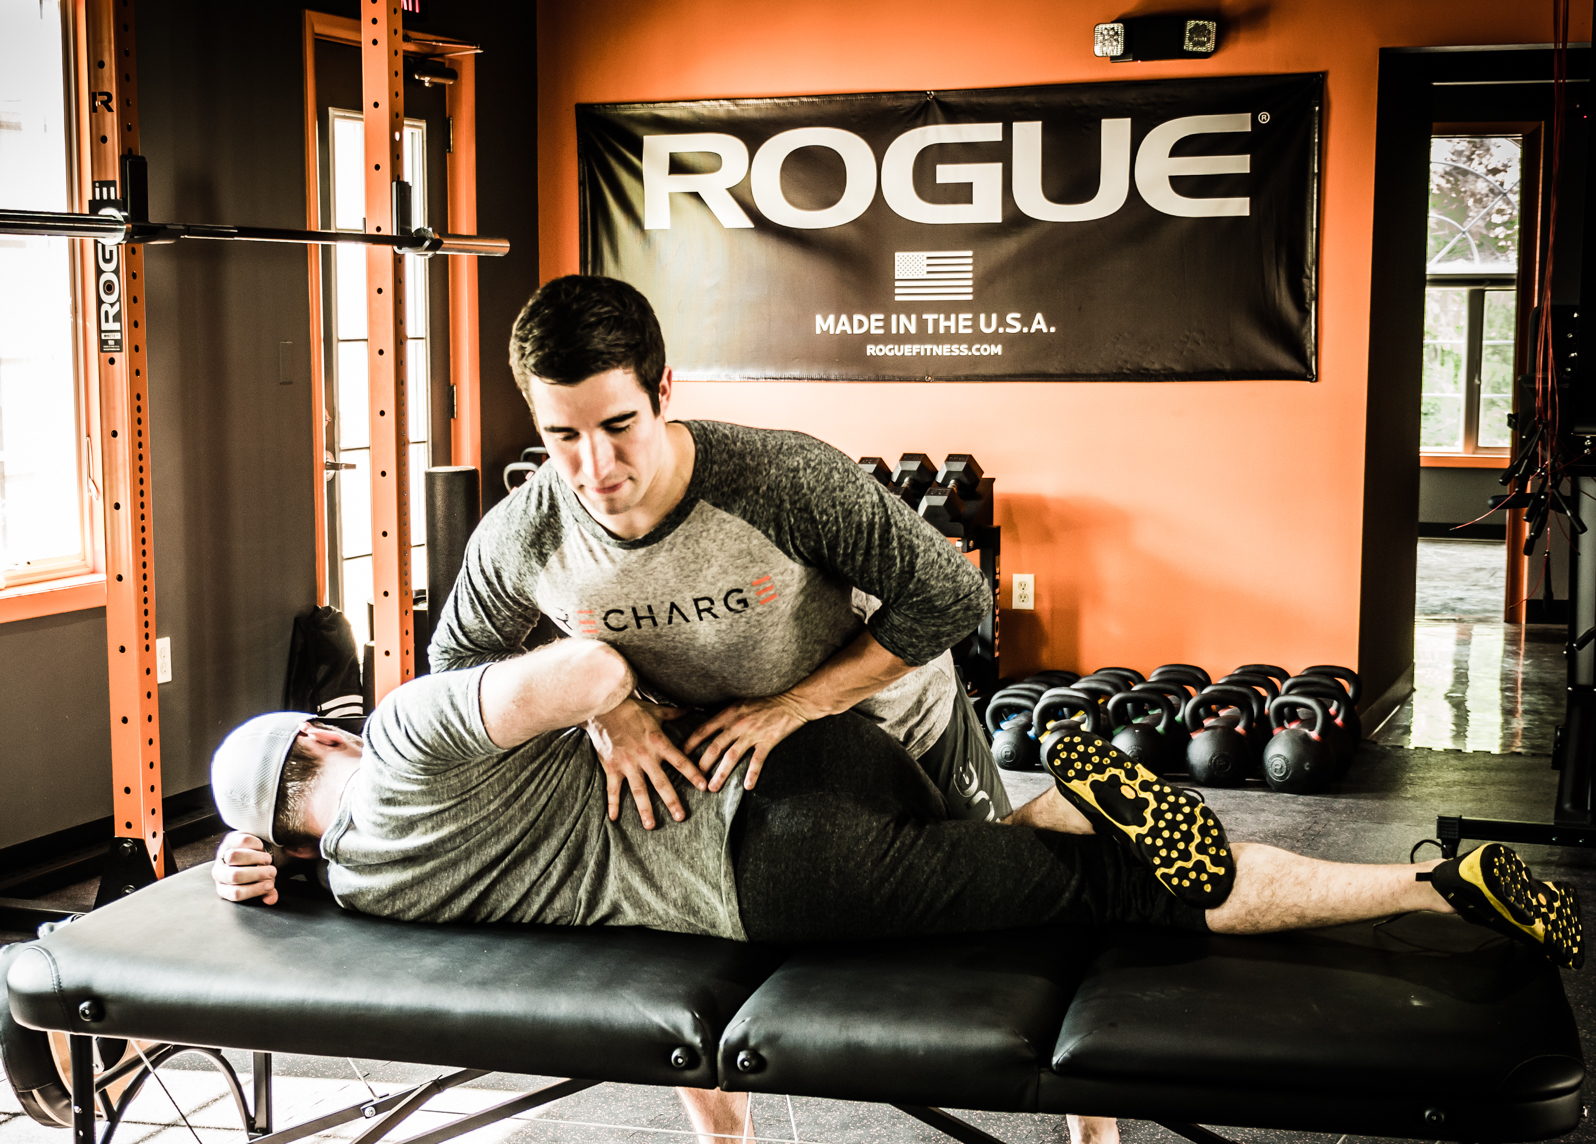 Recharge sports physical therapy